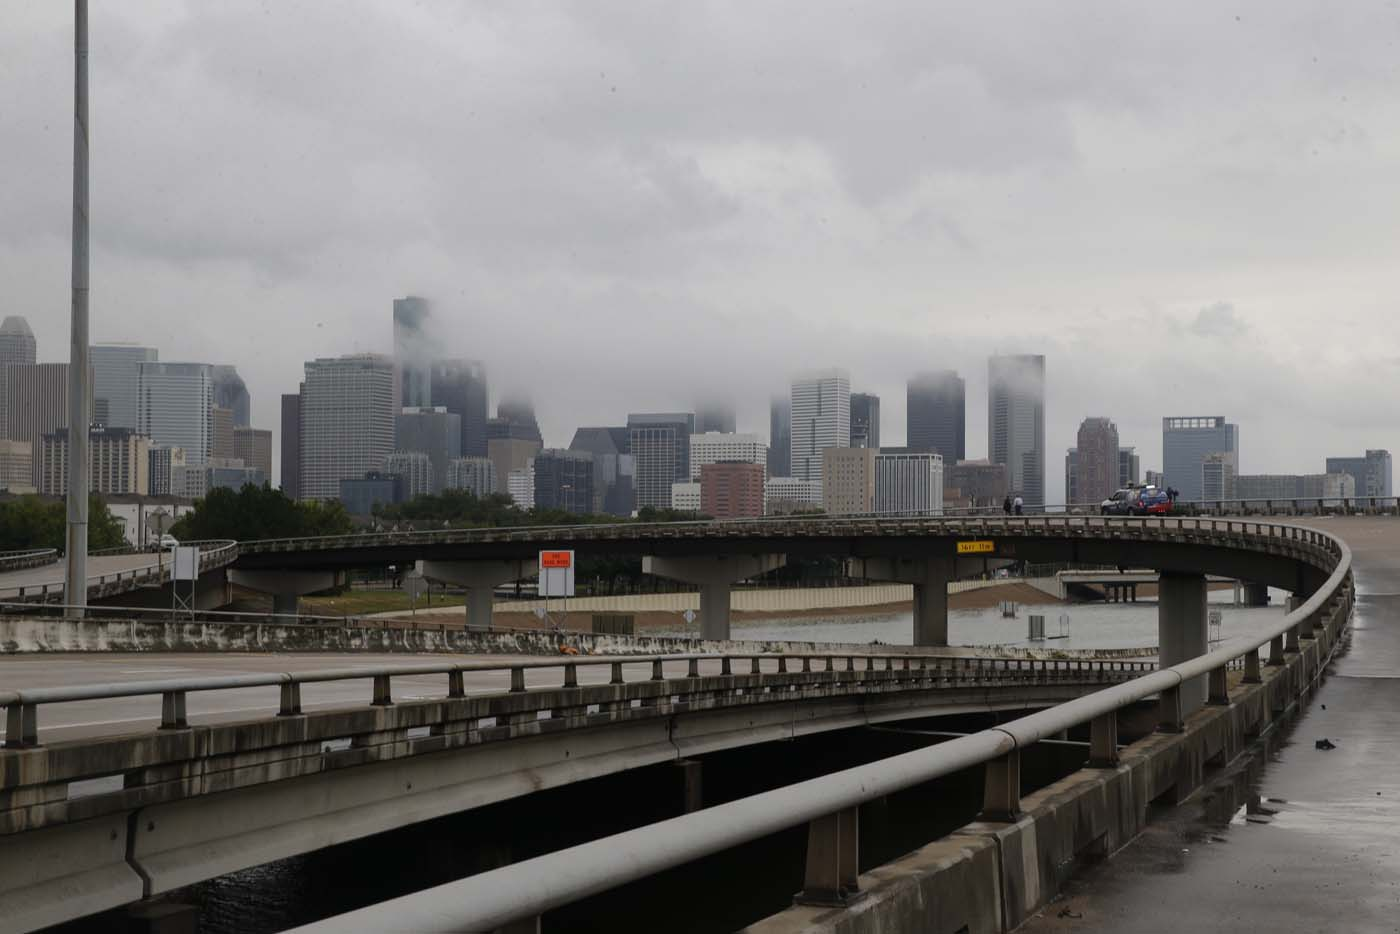 The downtown Houston skyline and flooded highway 288 are seen August 27, 2017 as the city battles with tropical storm Harvey and resulting floods. / AFP PHOTO / Thomas B. Shea